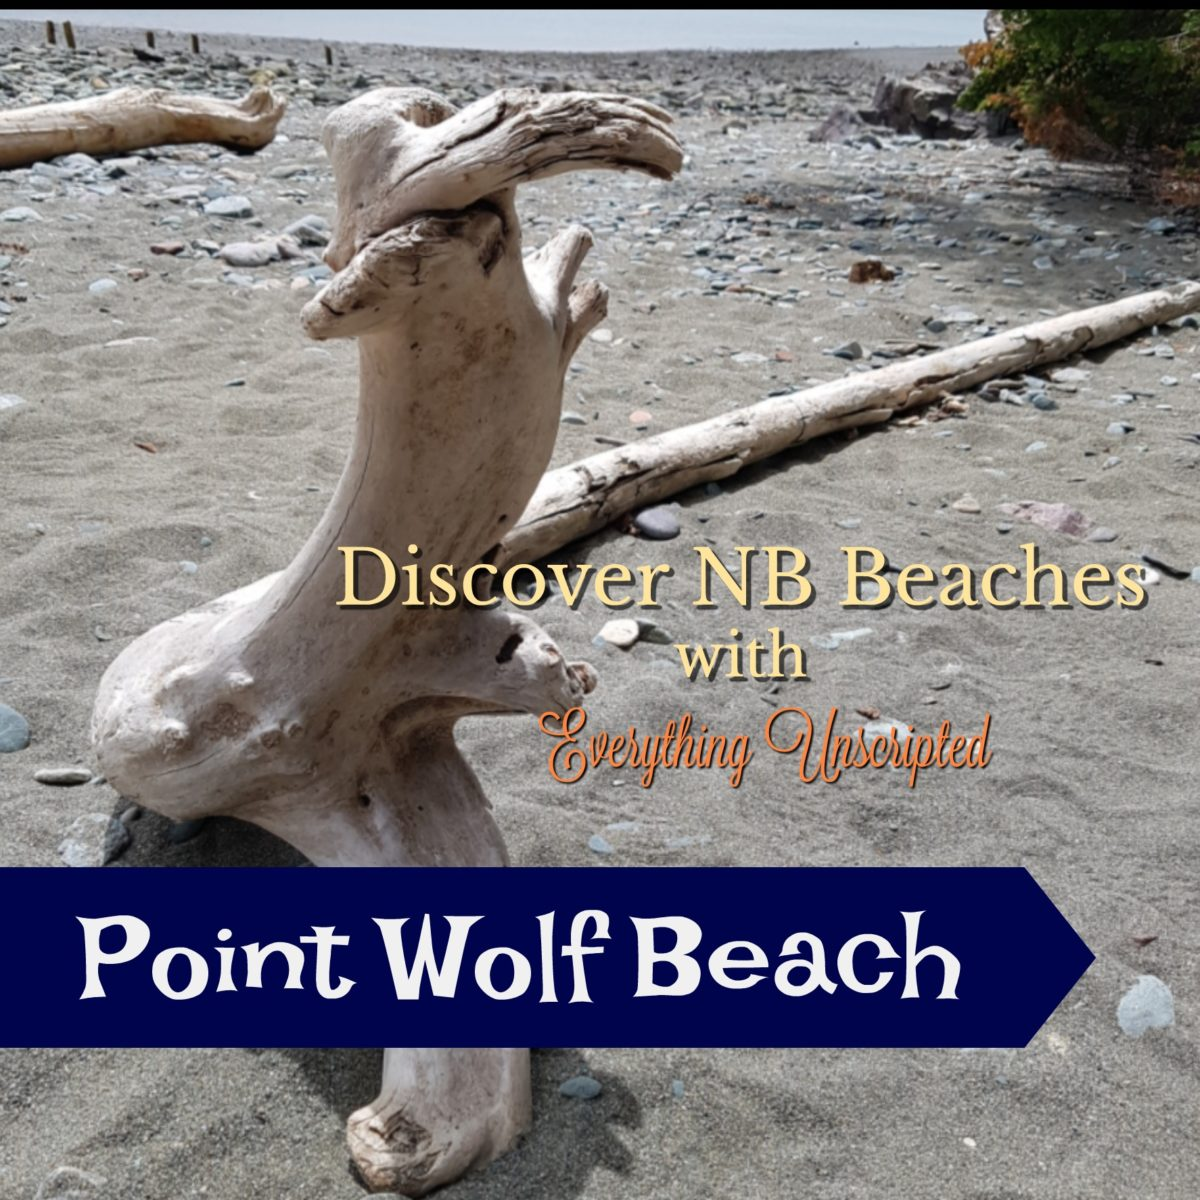 Discover NB Beaches – Point Wolf Beach